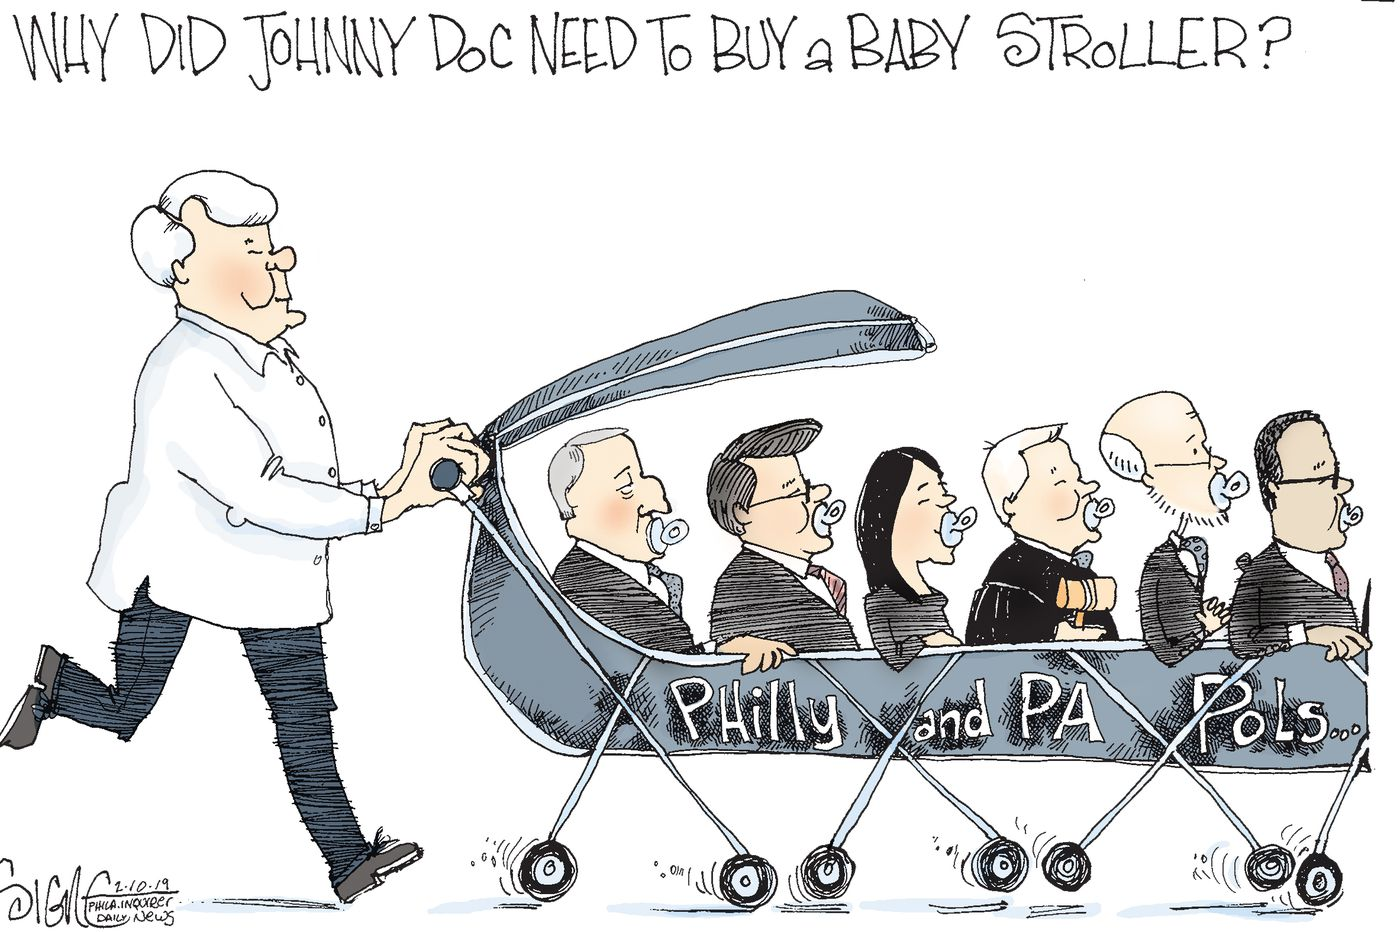 Political Cartoon: Johnny Doc's Political Stroller